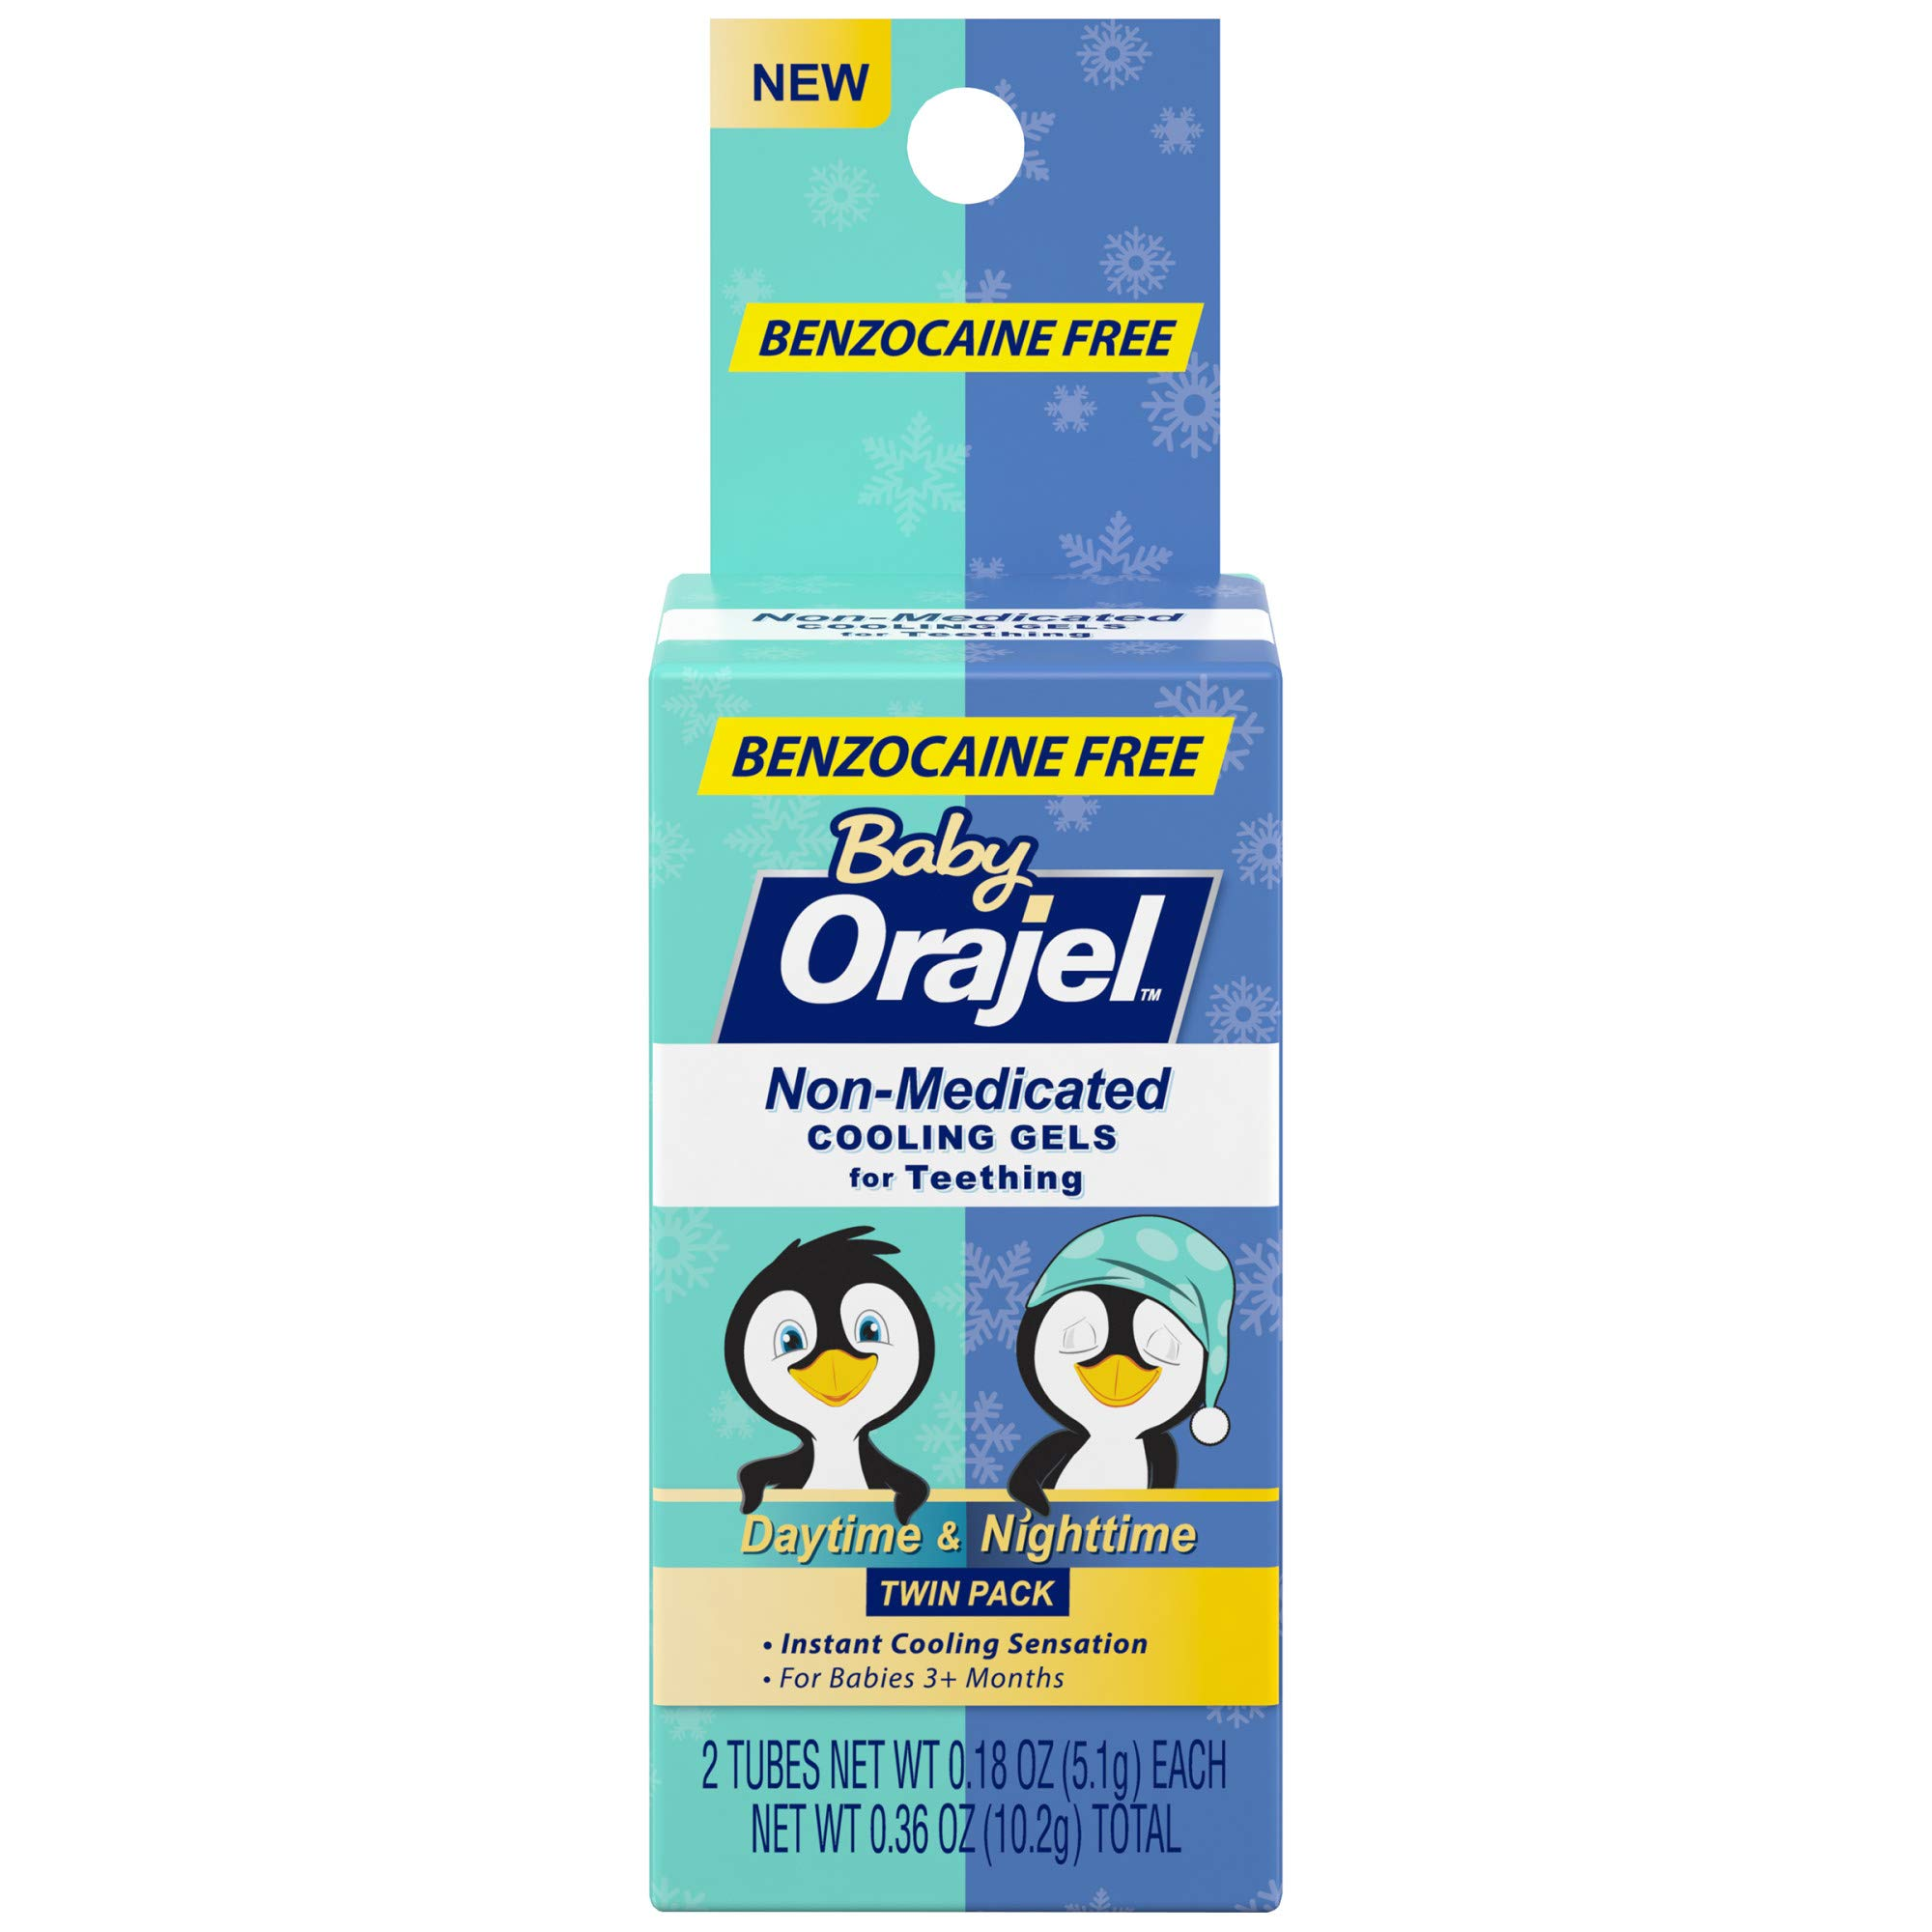 Orajel Baby Daytime & Nighttime Non-medicated Cooling Gels for Teething, 2 Tubes, 0.18 Oz Each